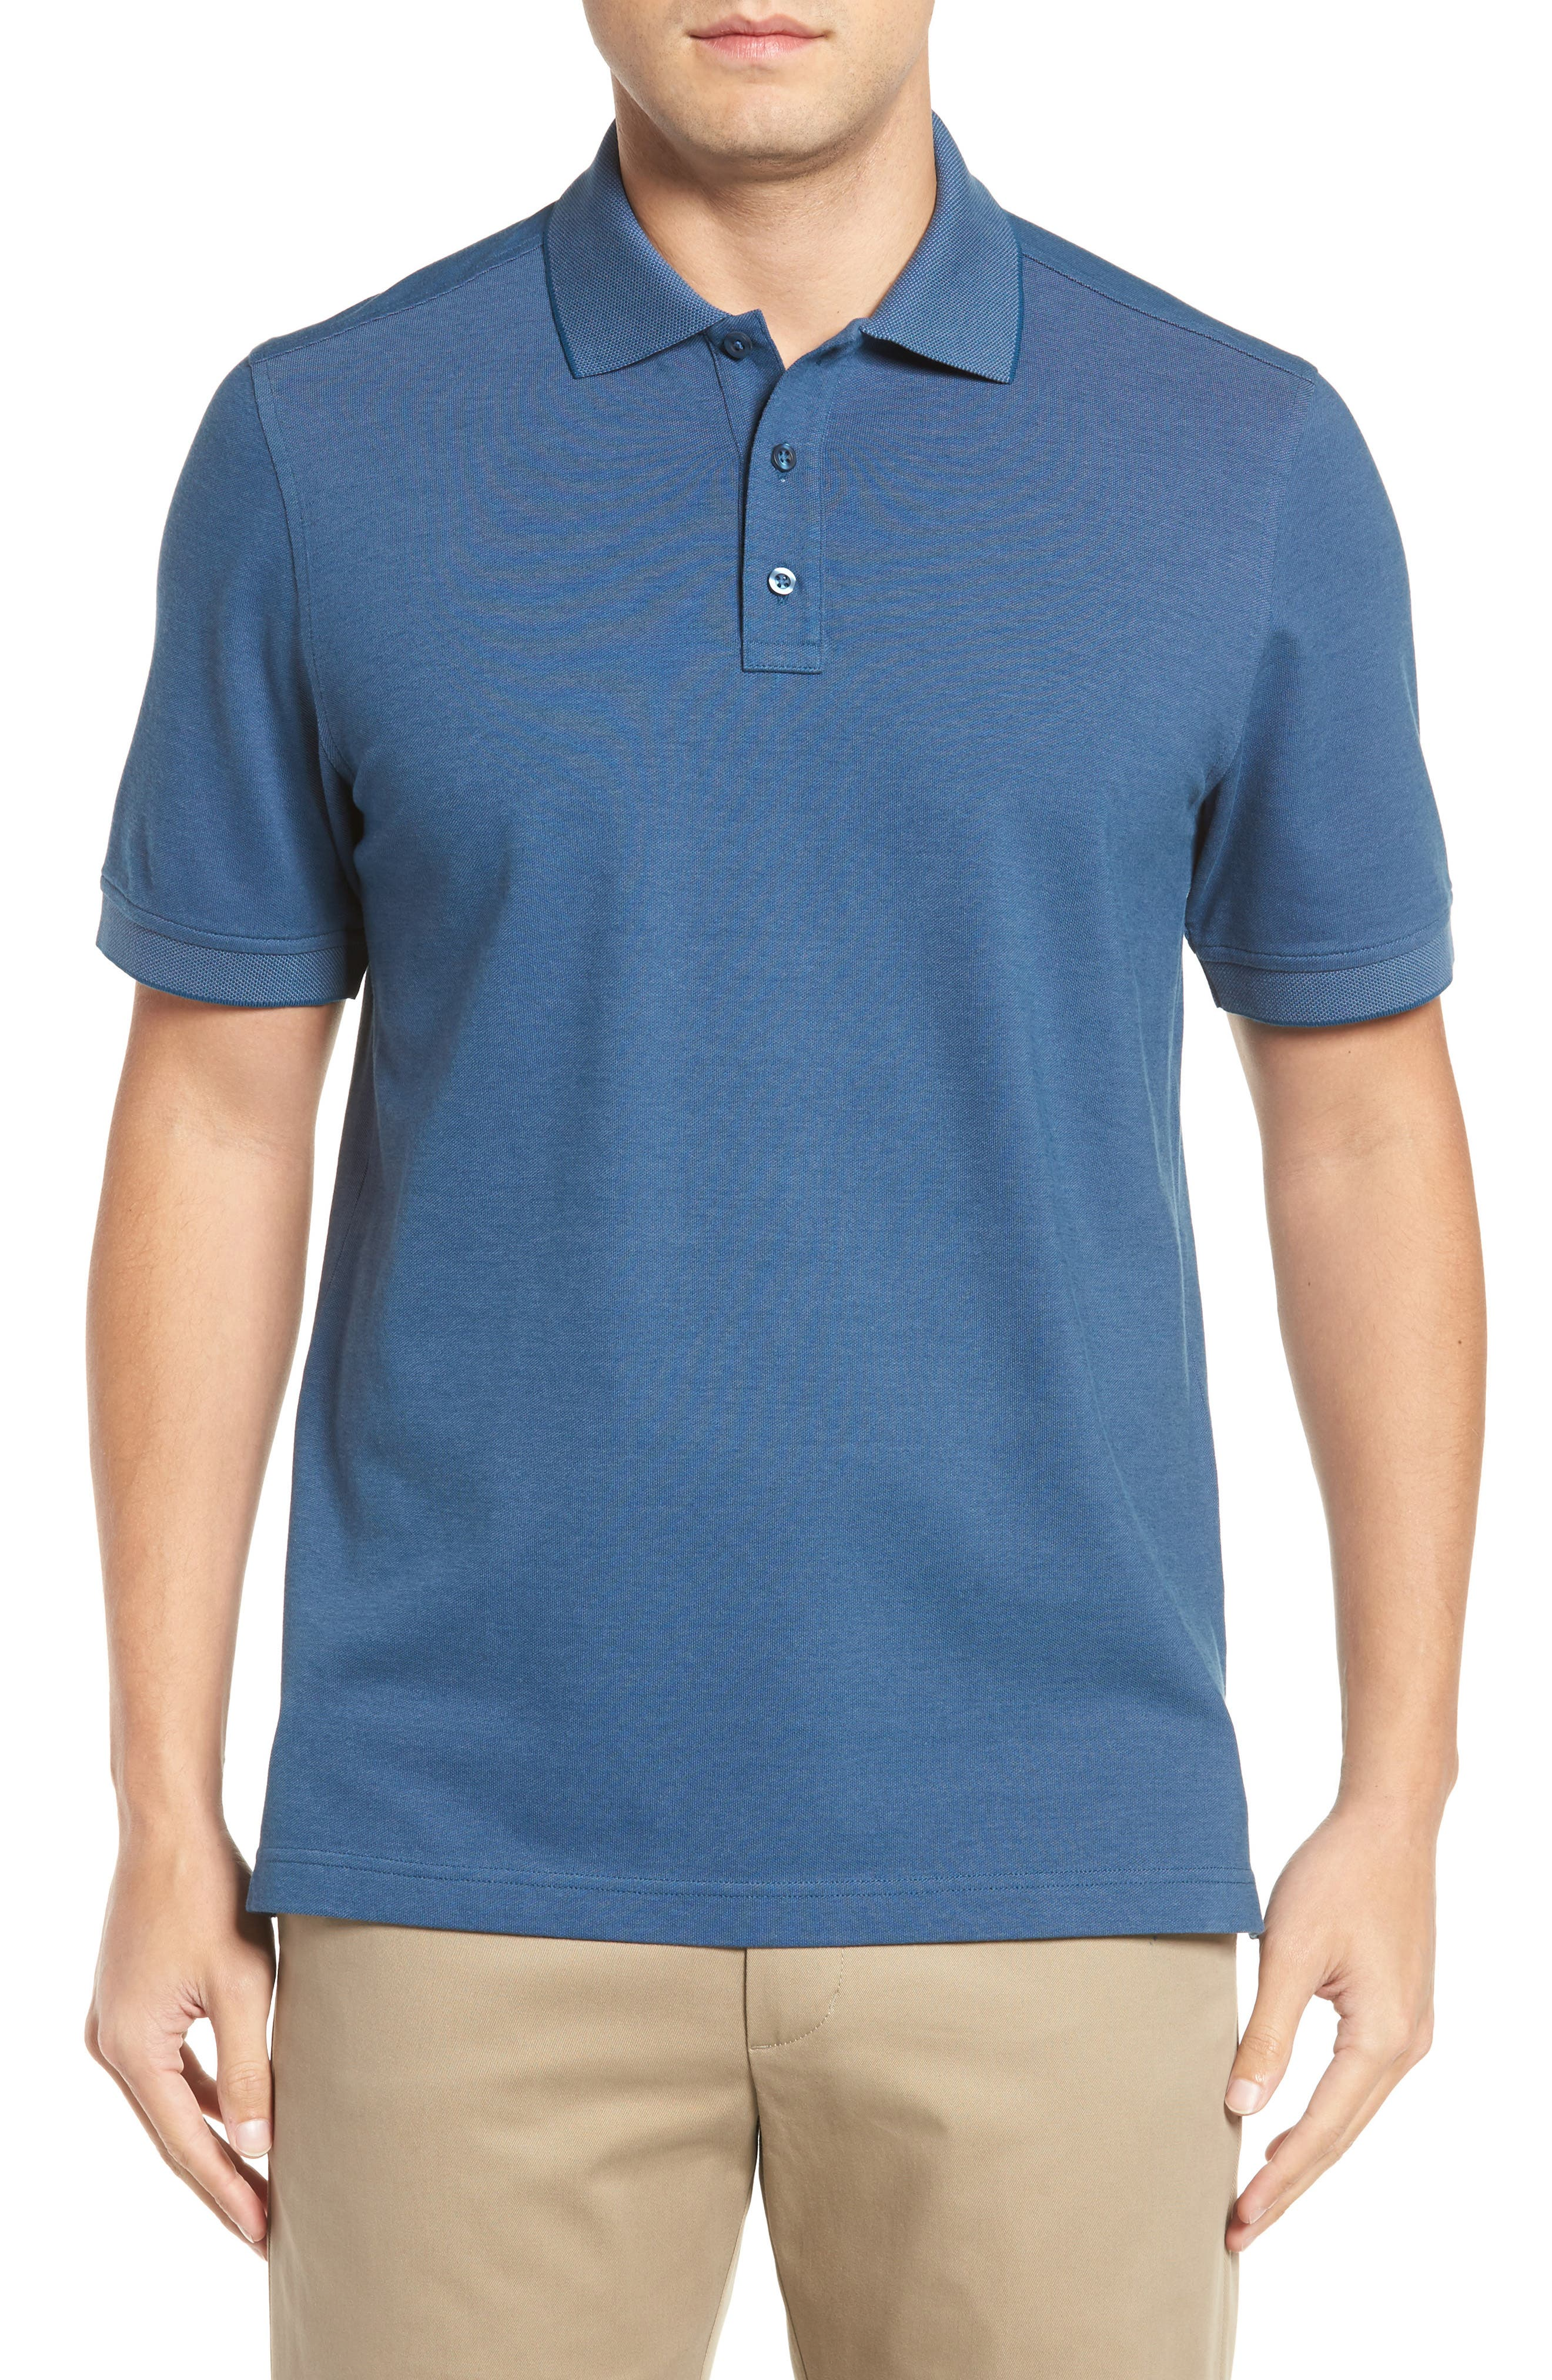 Main Image - Nordstrom Men's Shop 'Classic' Regular Fit Oxford Piqué Polo (Big)